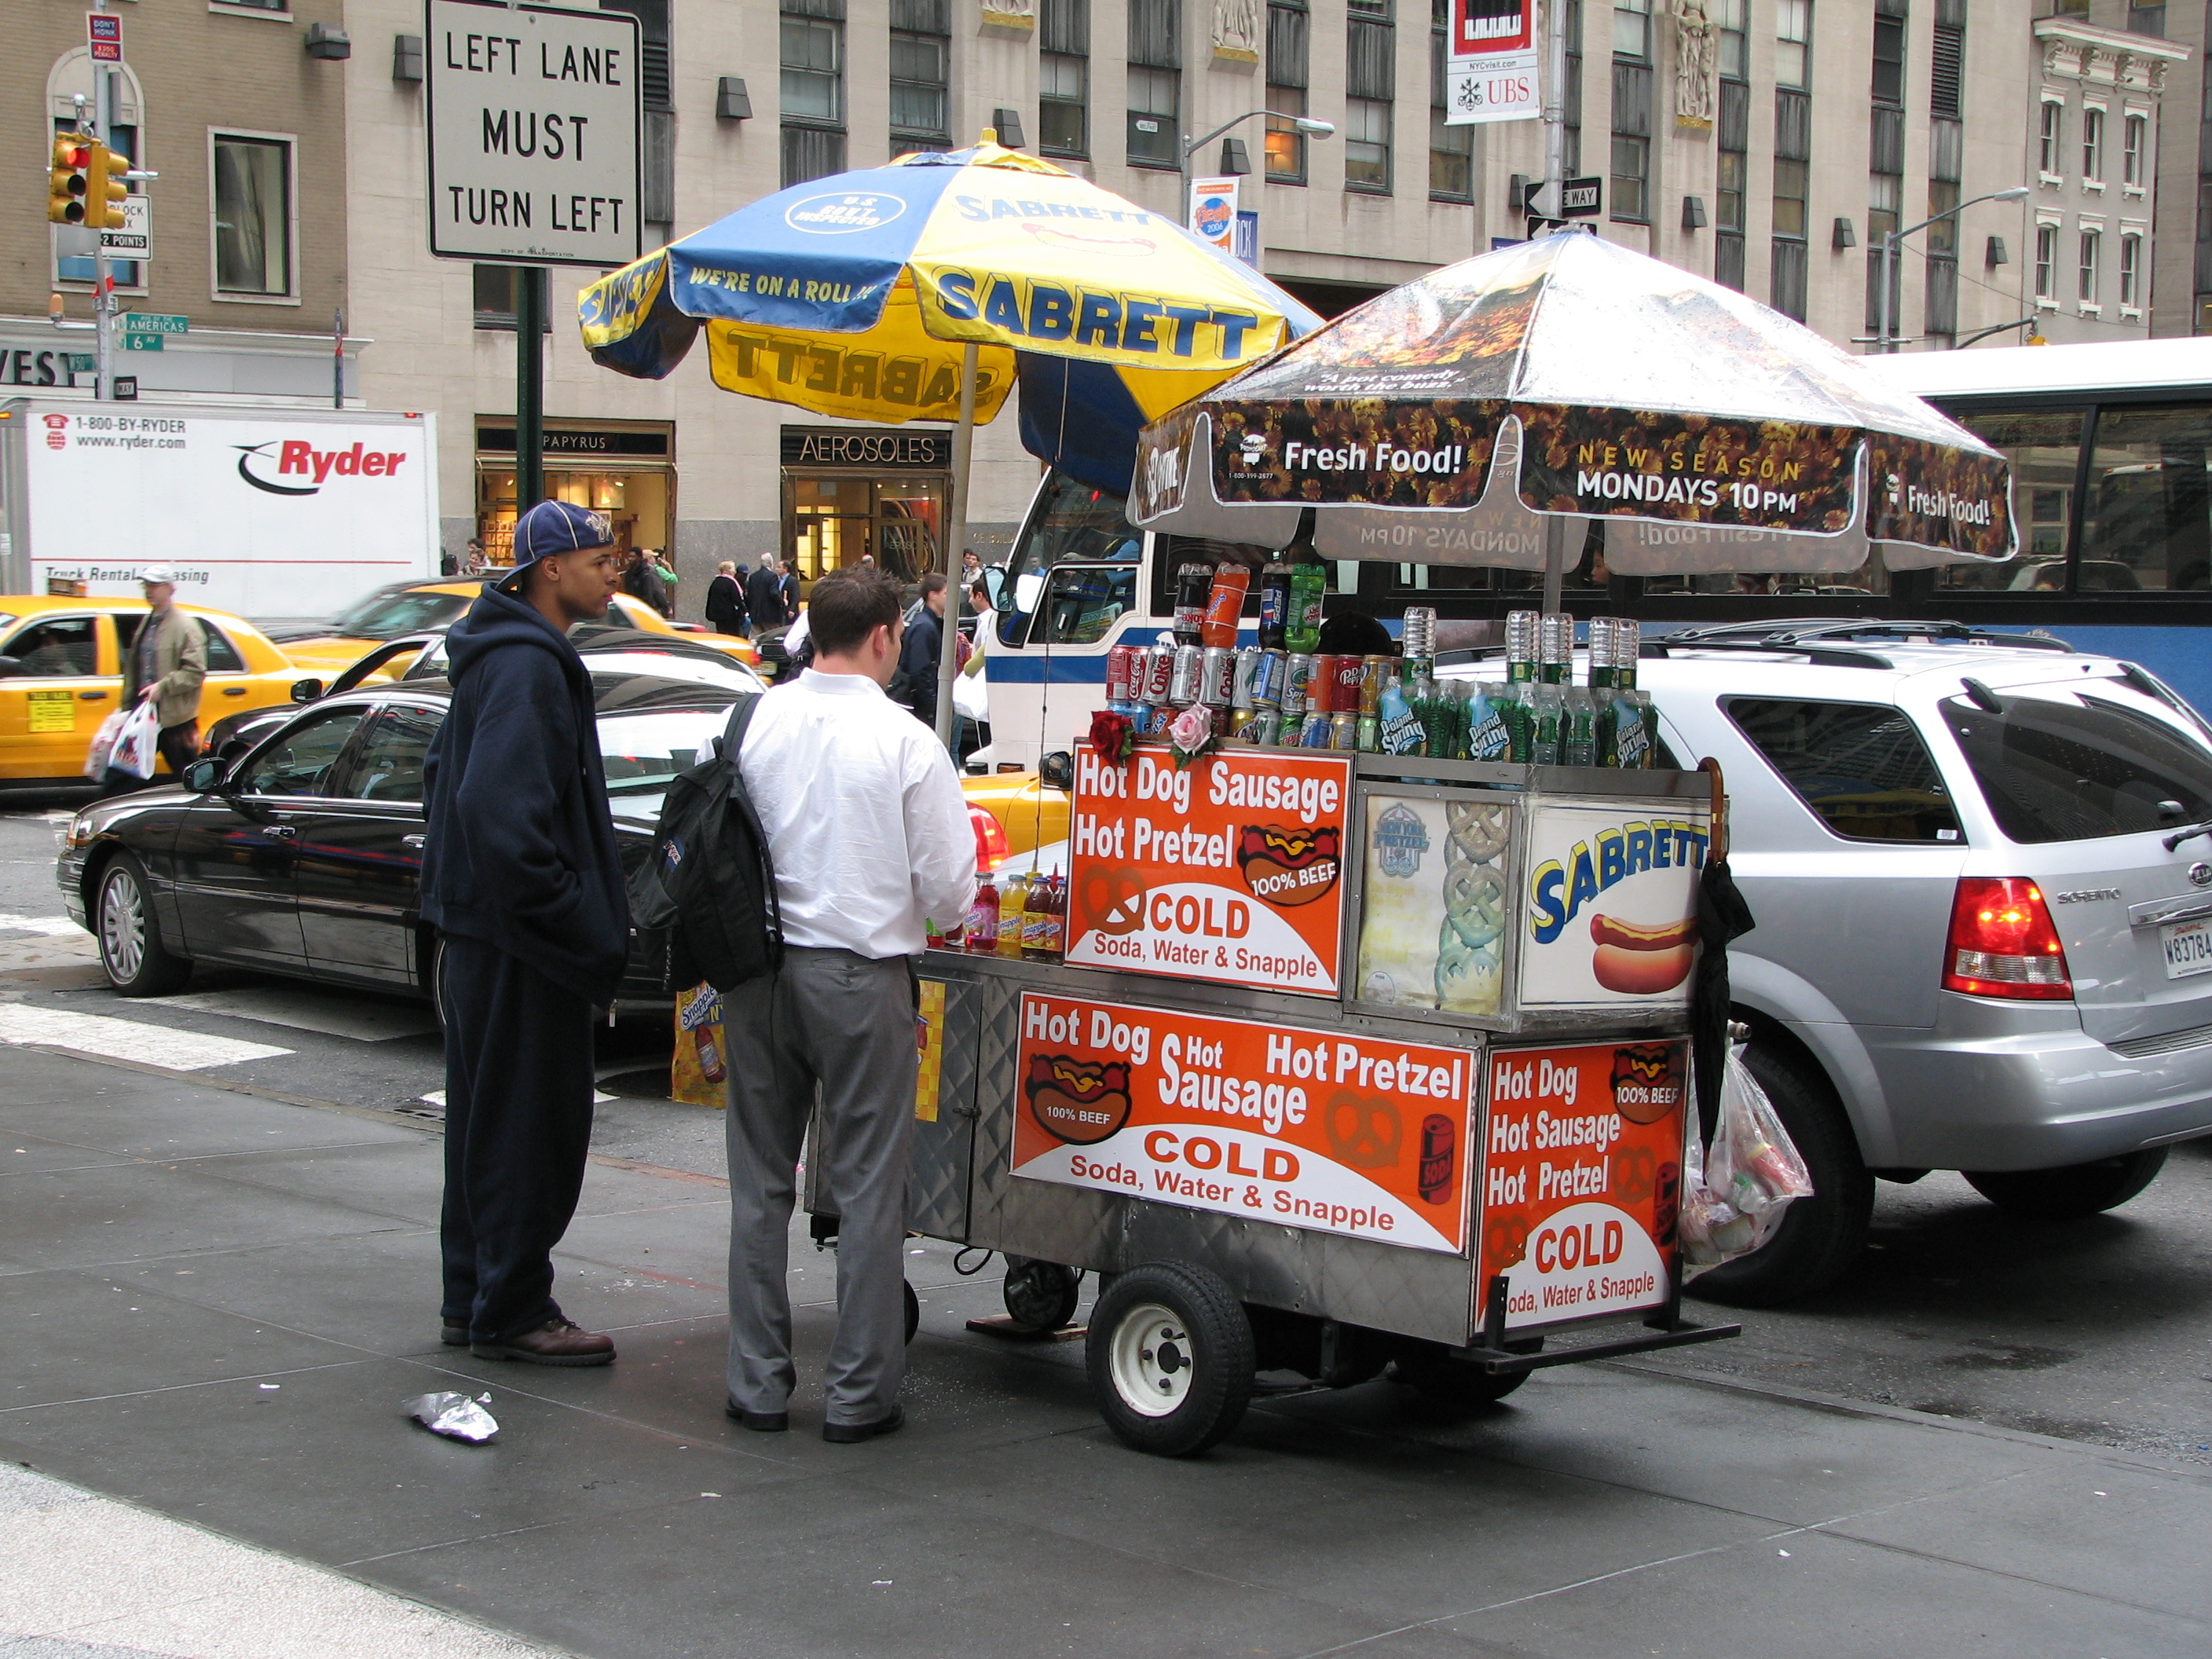 Food Vendor Truck Chilidogs